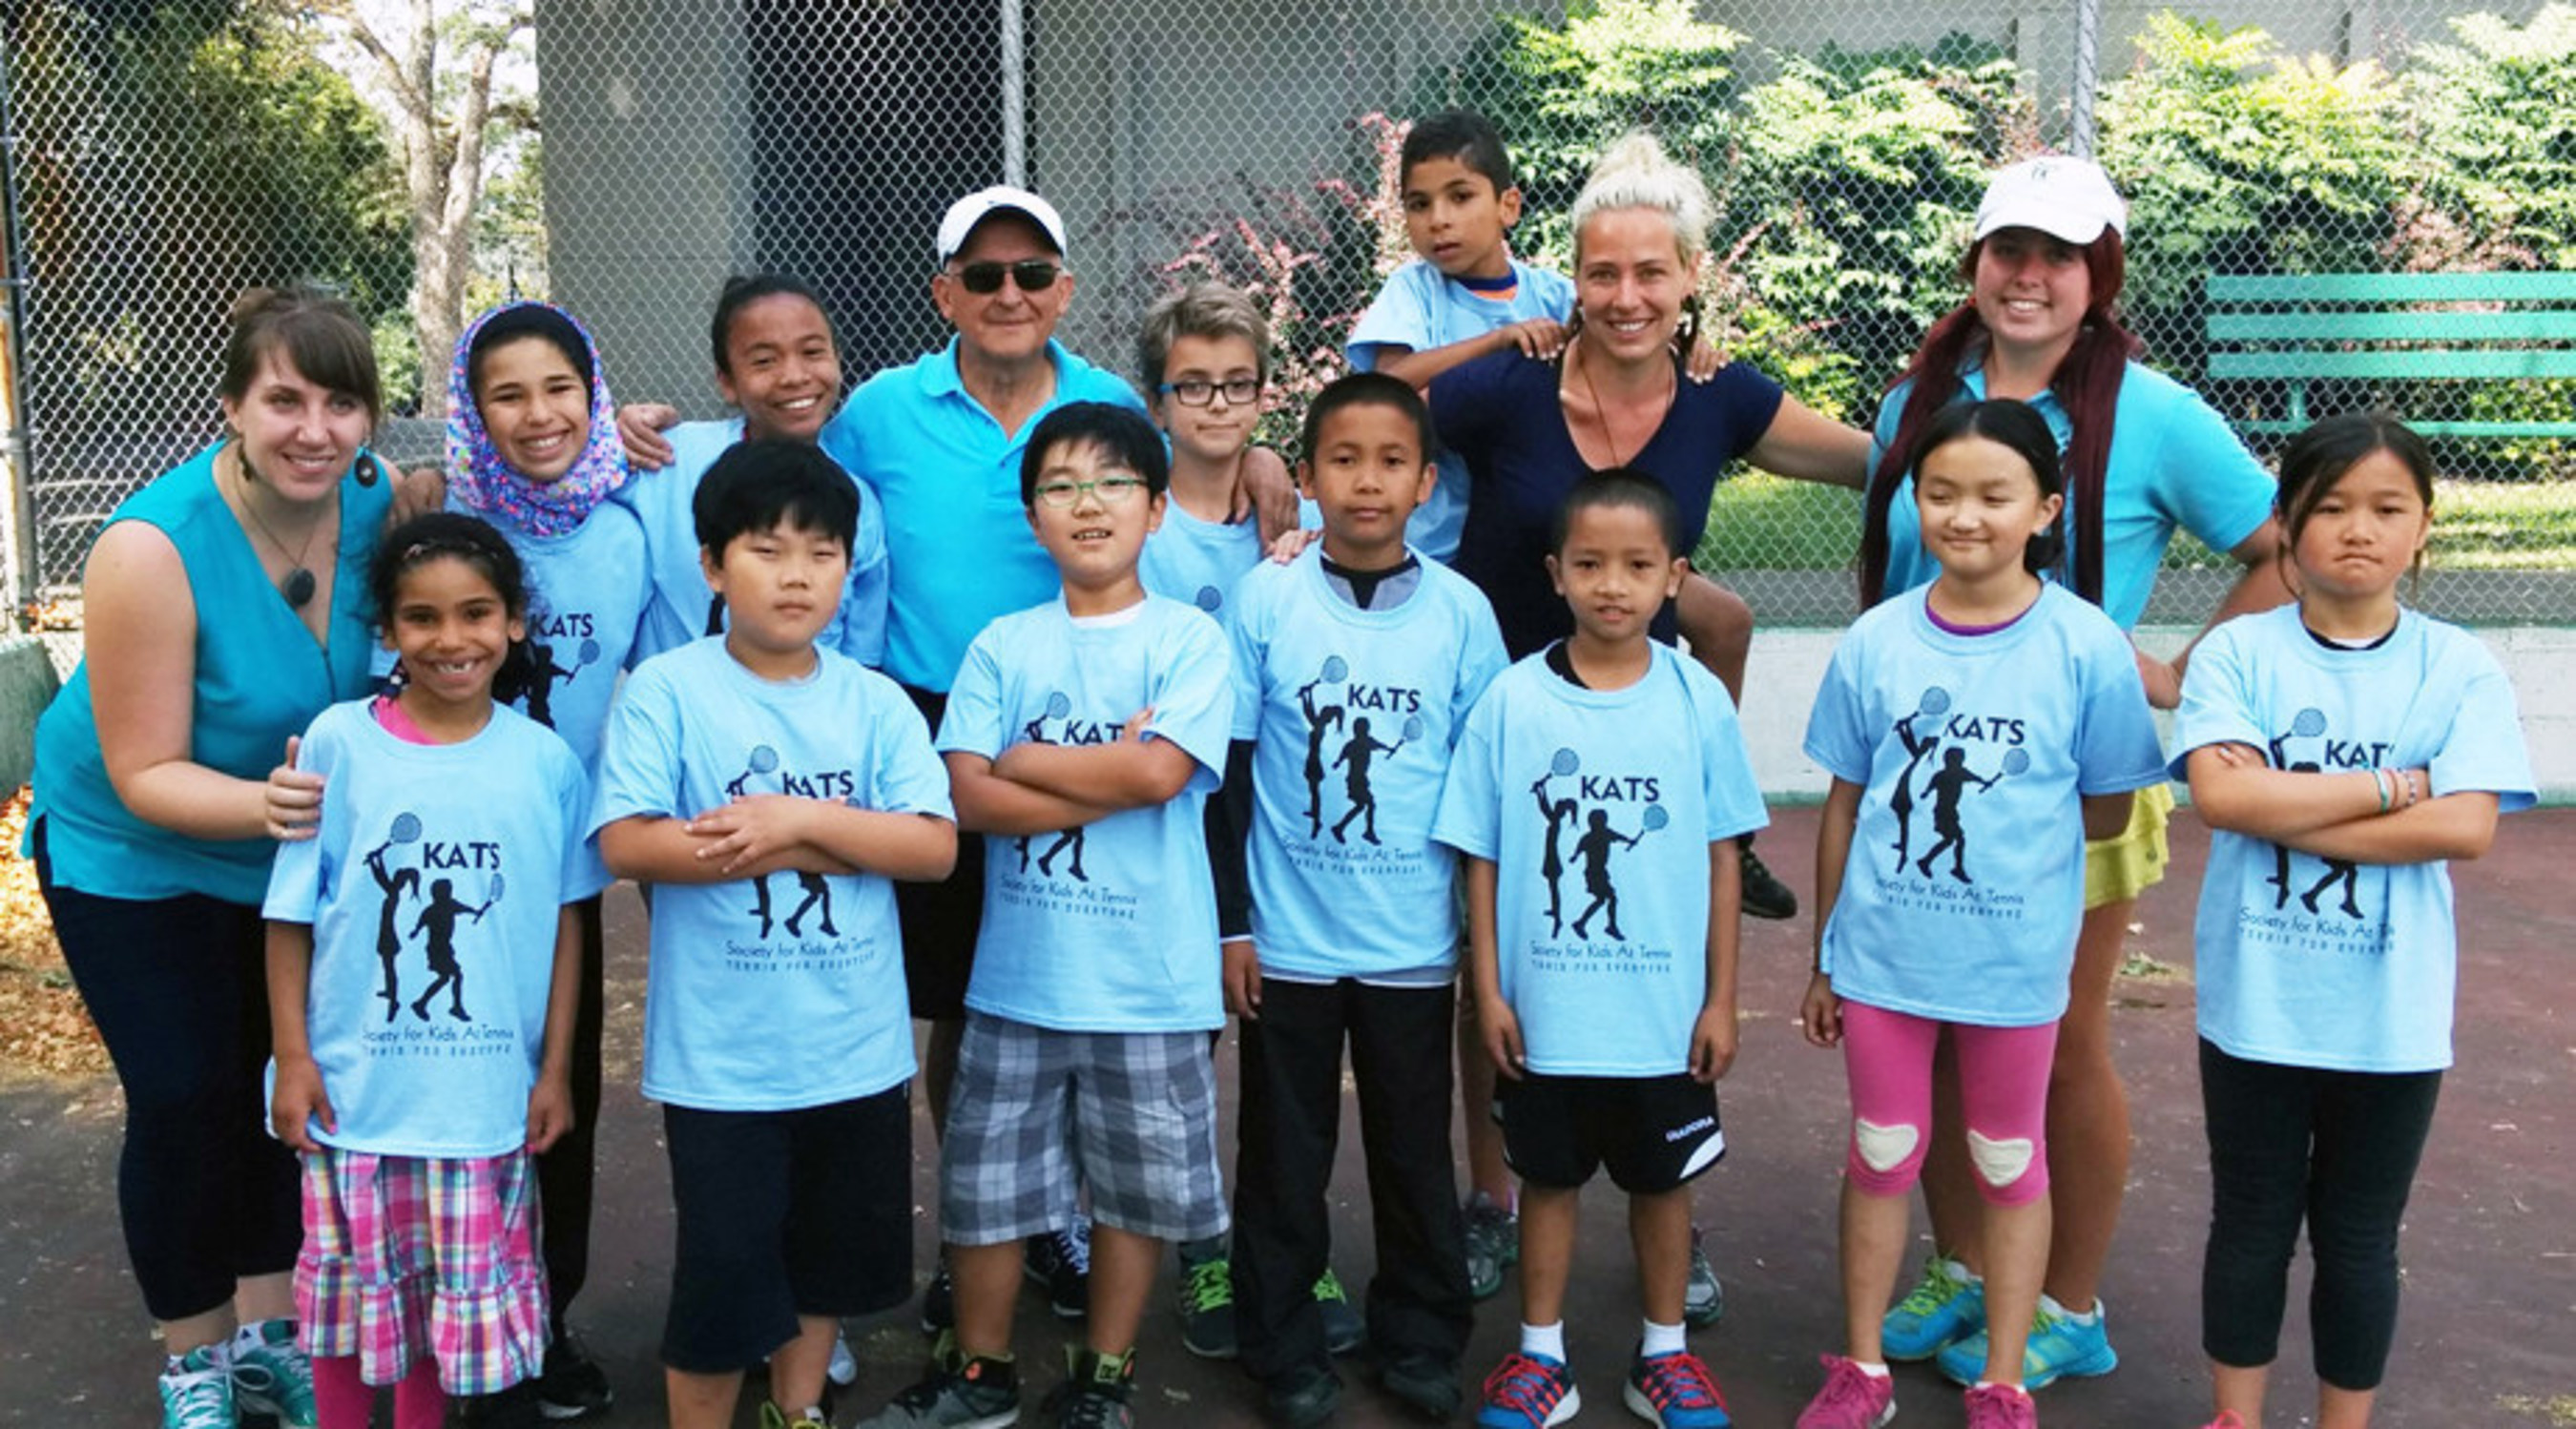 Society For Kids at Tennis - Inter-Cultural Association's tennis class in session!